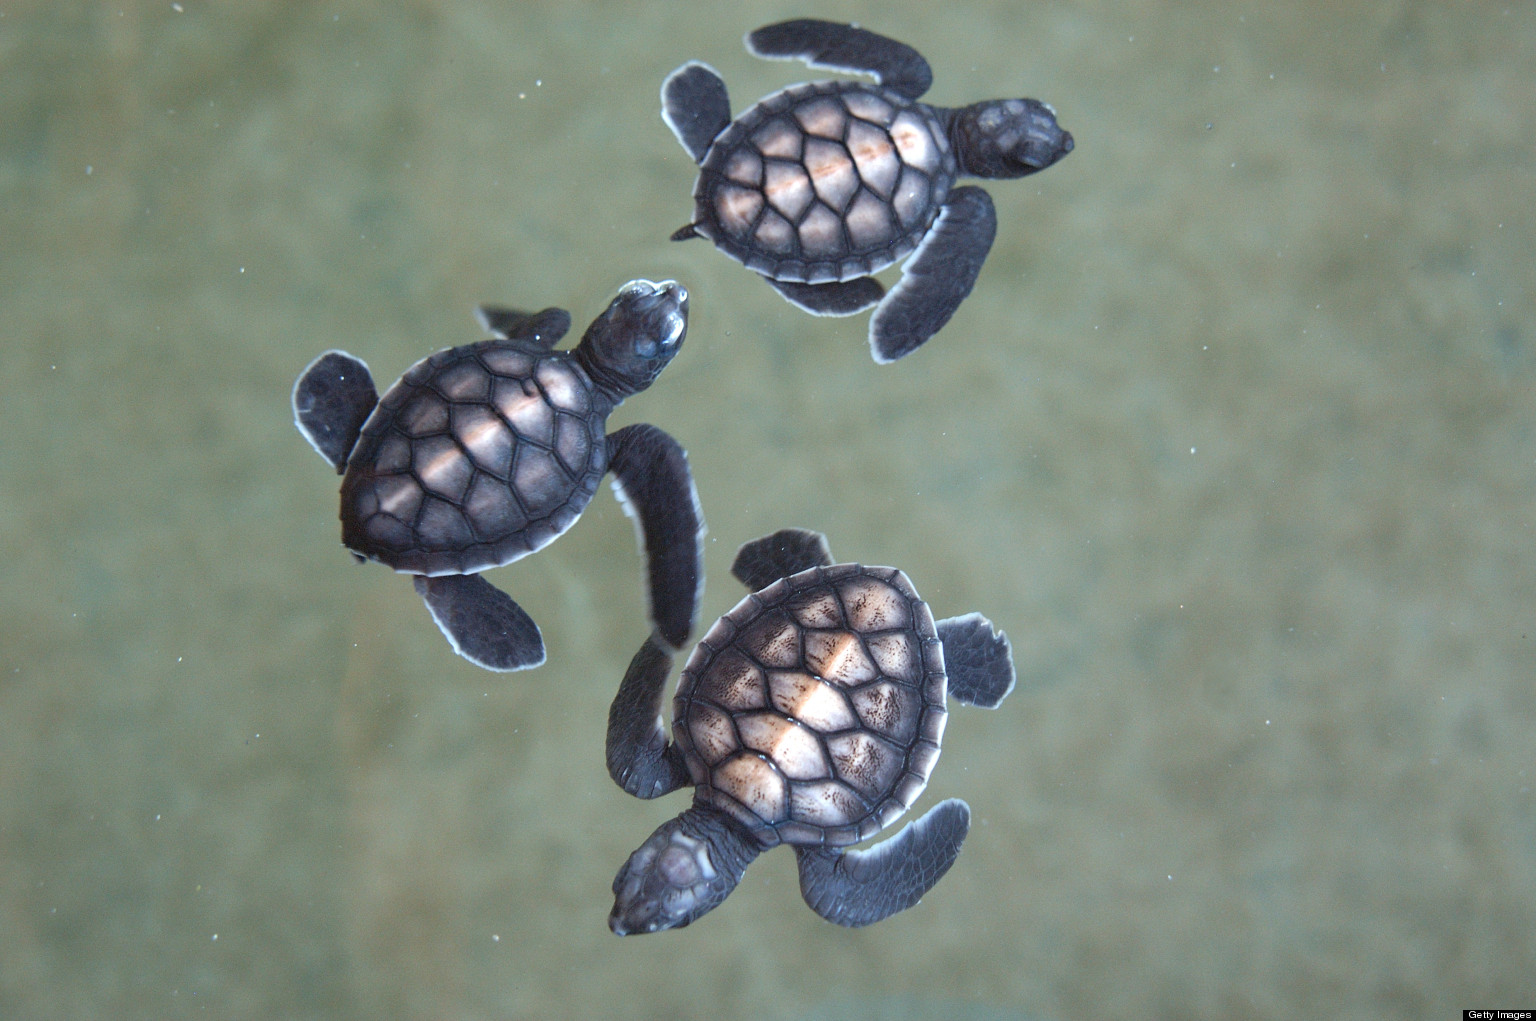 Baby sea turtle hatching clipart freeuse stock Baby Sea Turtle Hatching Clipart freeuse stock